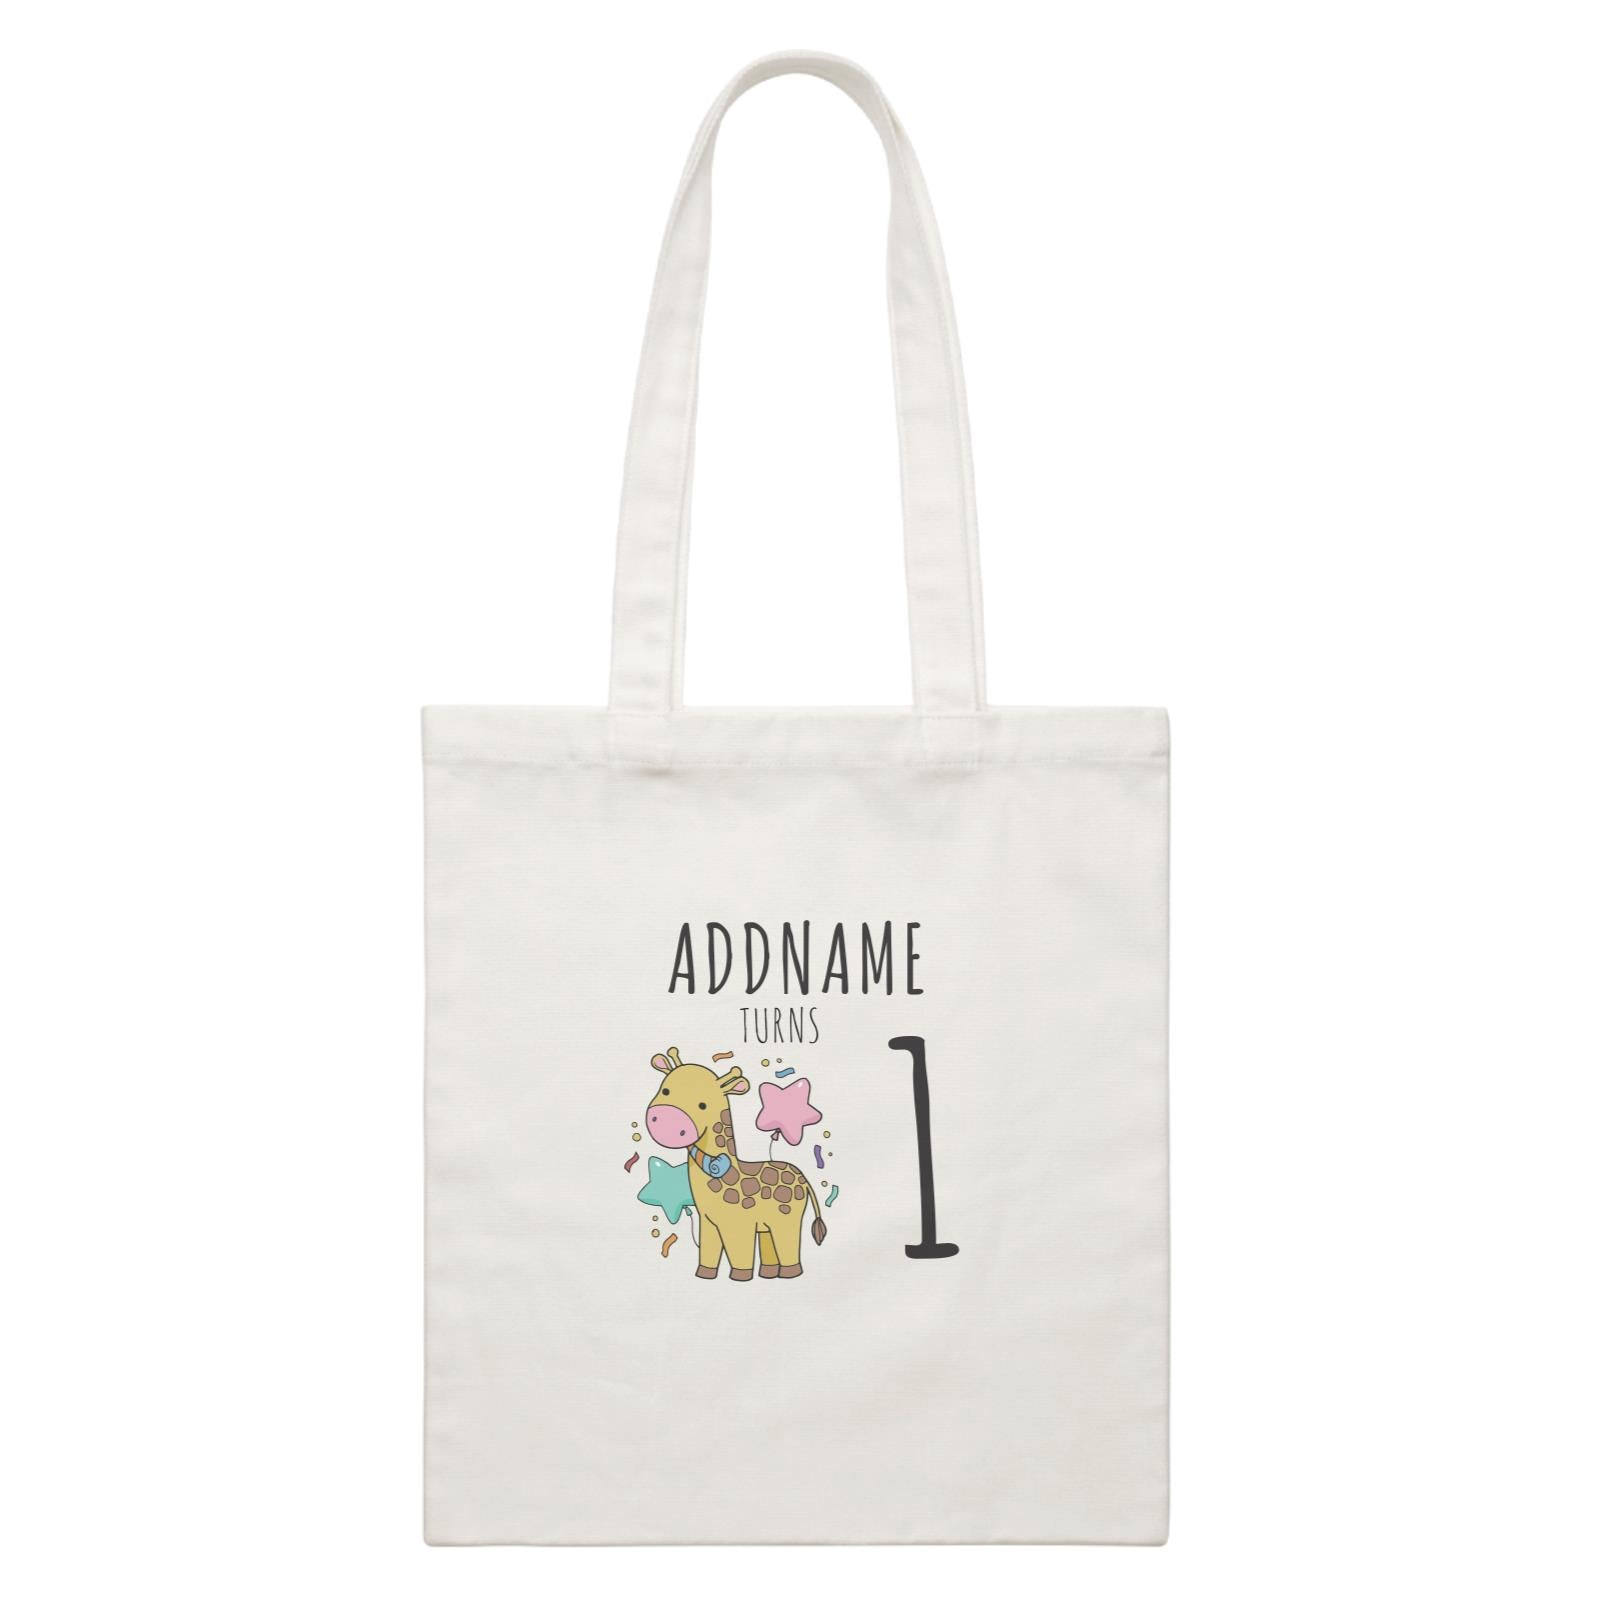 Birthday Sketch Animals Giraffe with Party Horn Addname Turns 1 White Canvas Bag